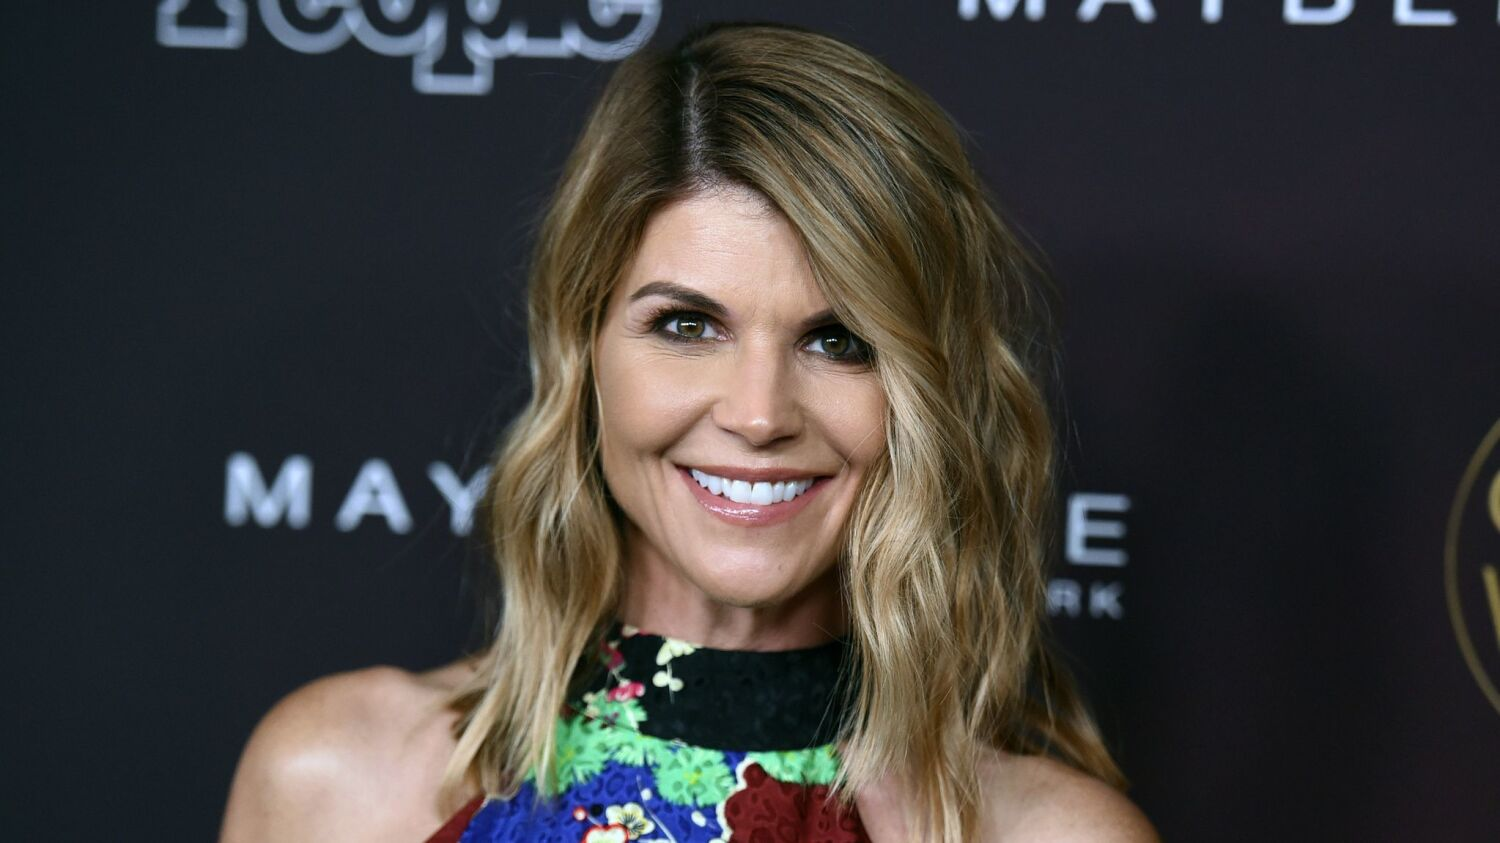 USC questioned whether Lori Loughlin's daughters were really athletes a year before admissions scandal